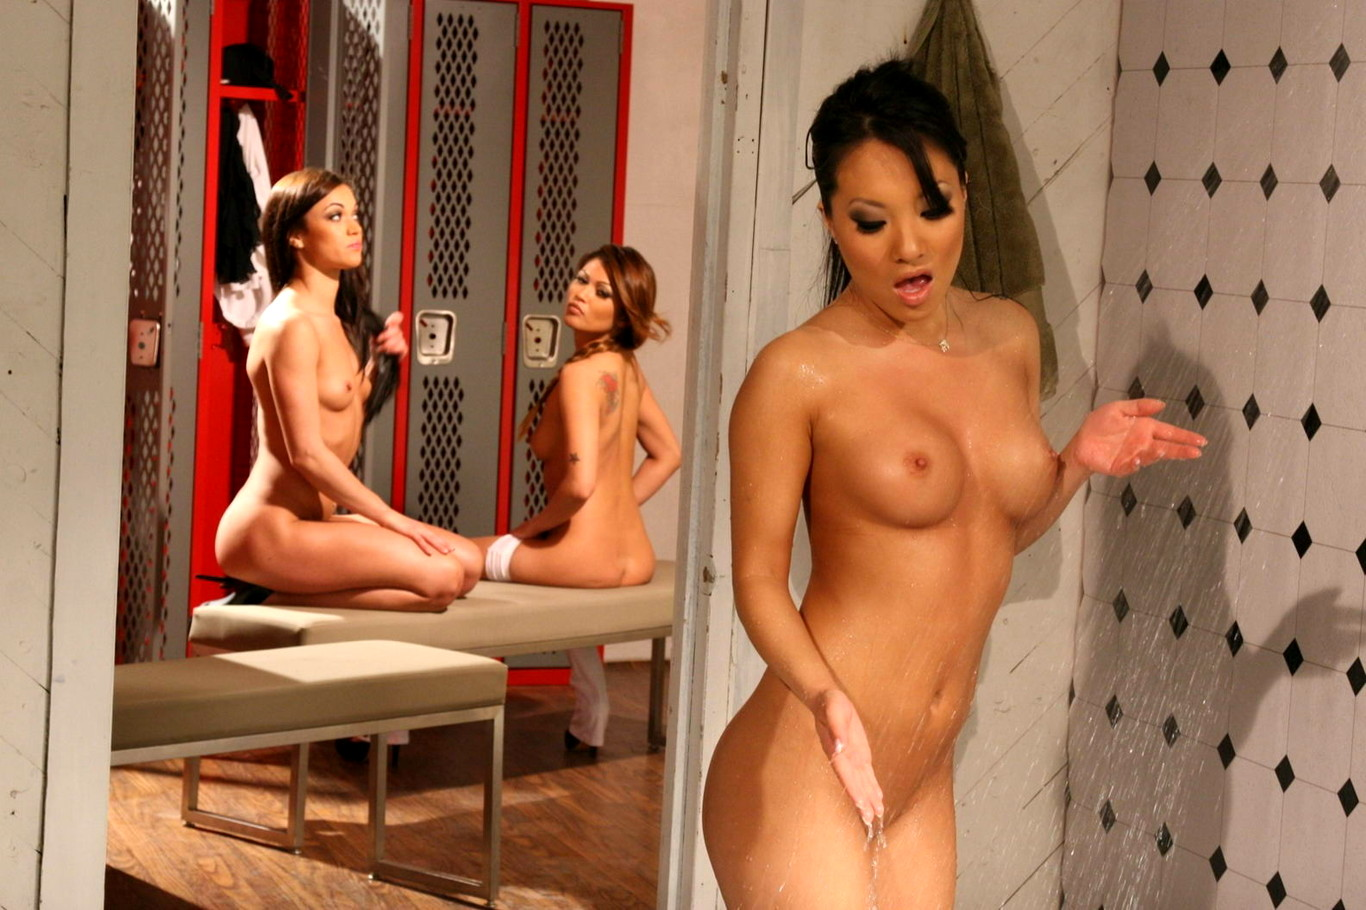 Asa Akira Watch Free Asian Porn Star Videos  Pornhub